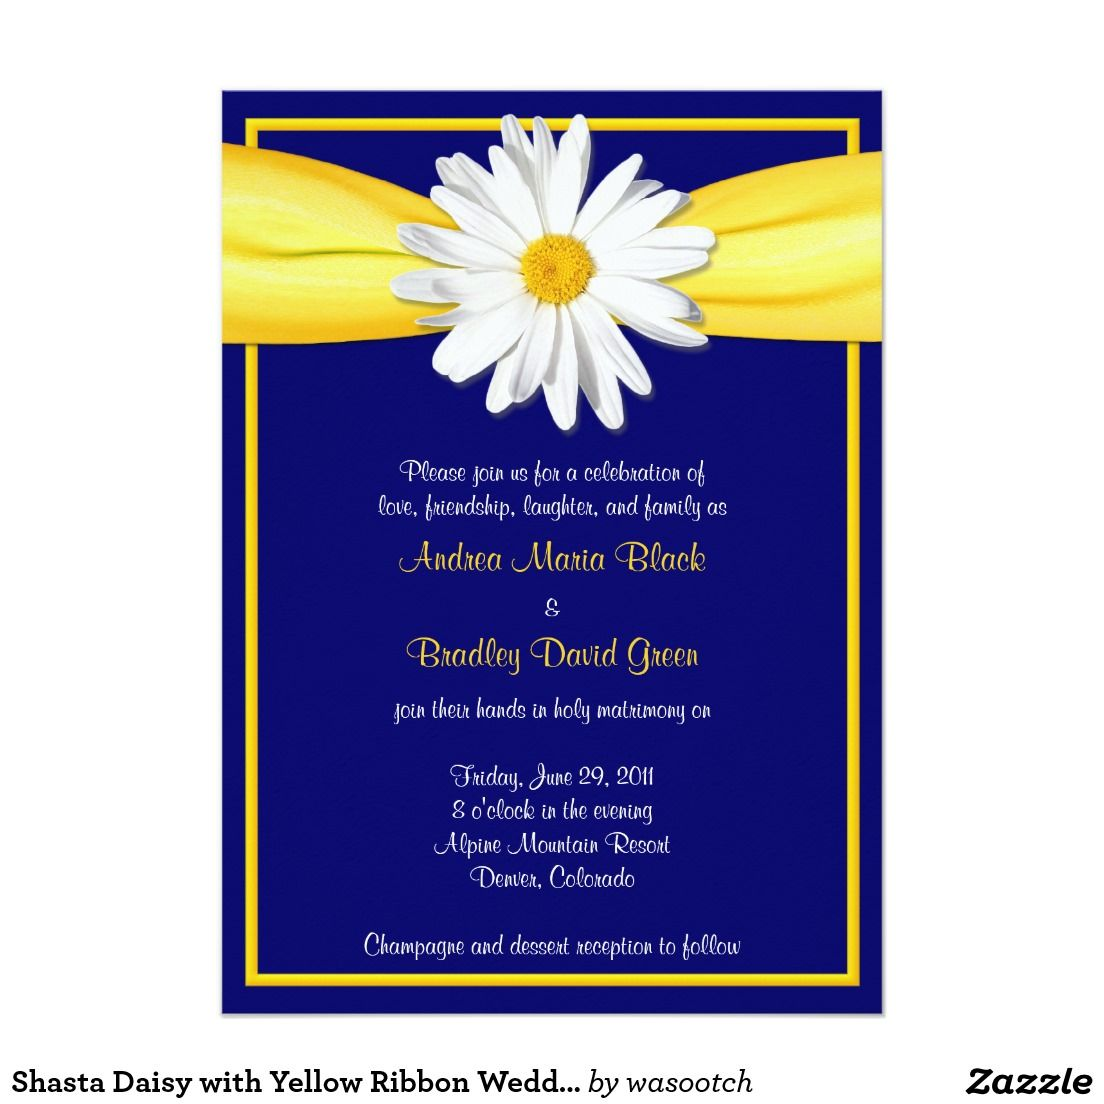 "Shasta Daisy with Yellow Ribbon Wedding Invitation 4"" X 4"